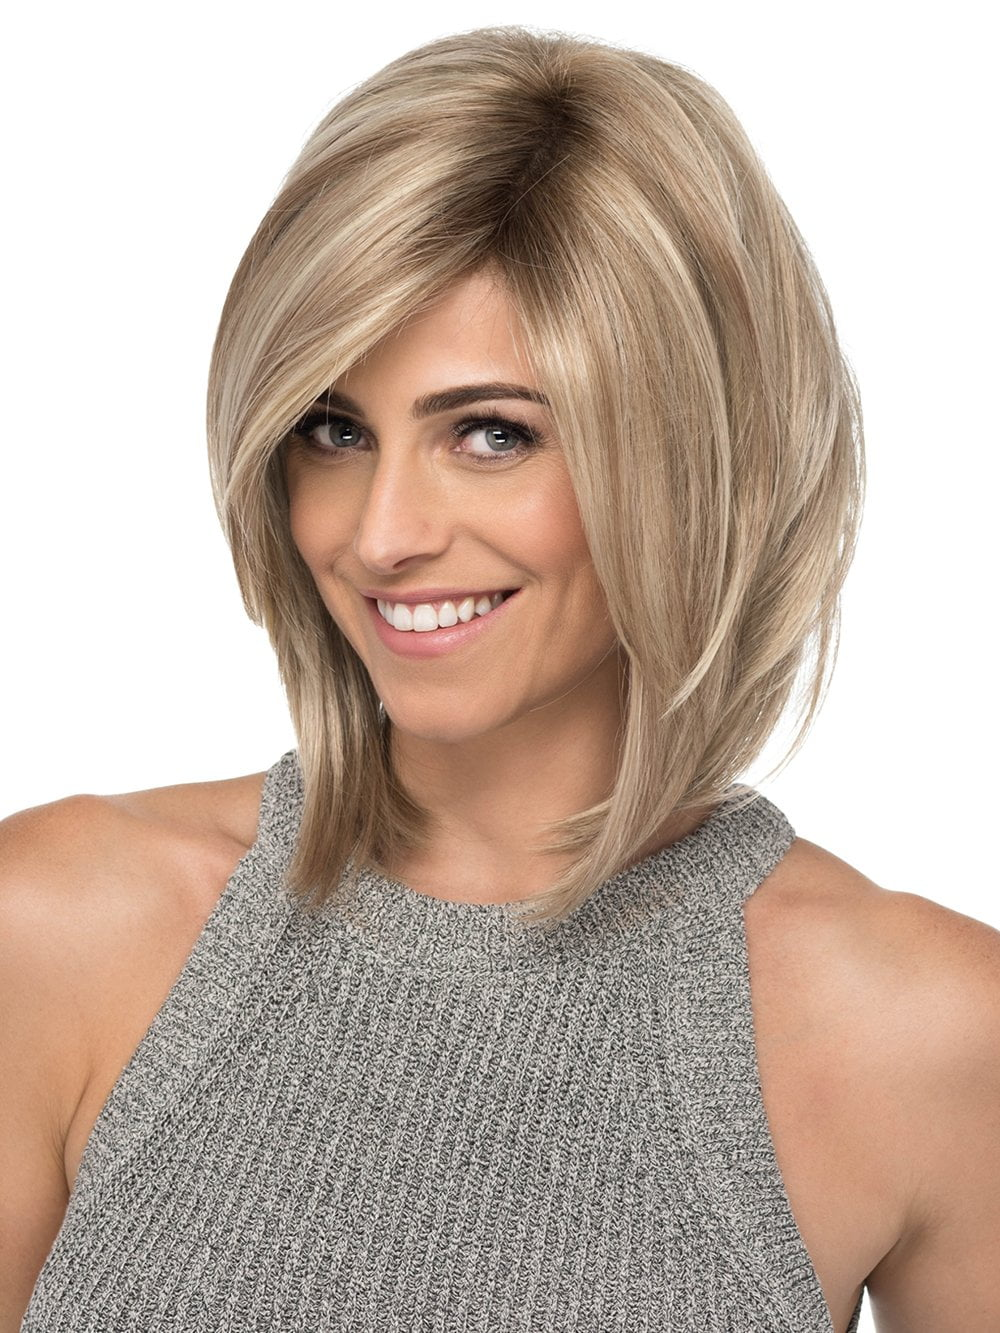 LACE FRONT | Medium Angled Layered Bob with Side Swept Bangs